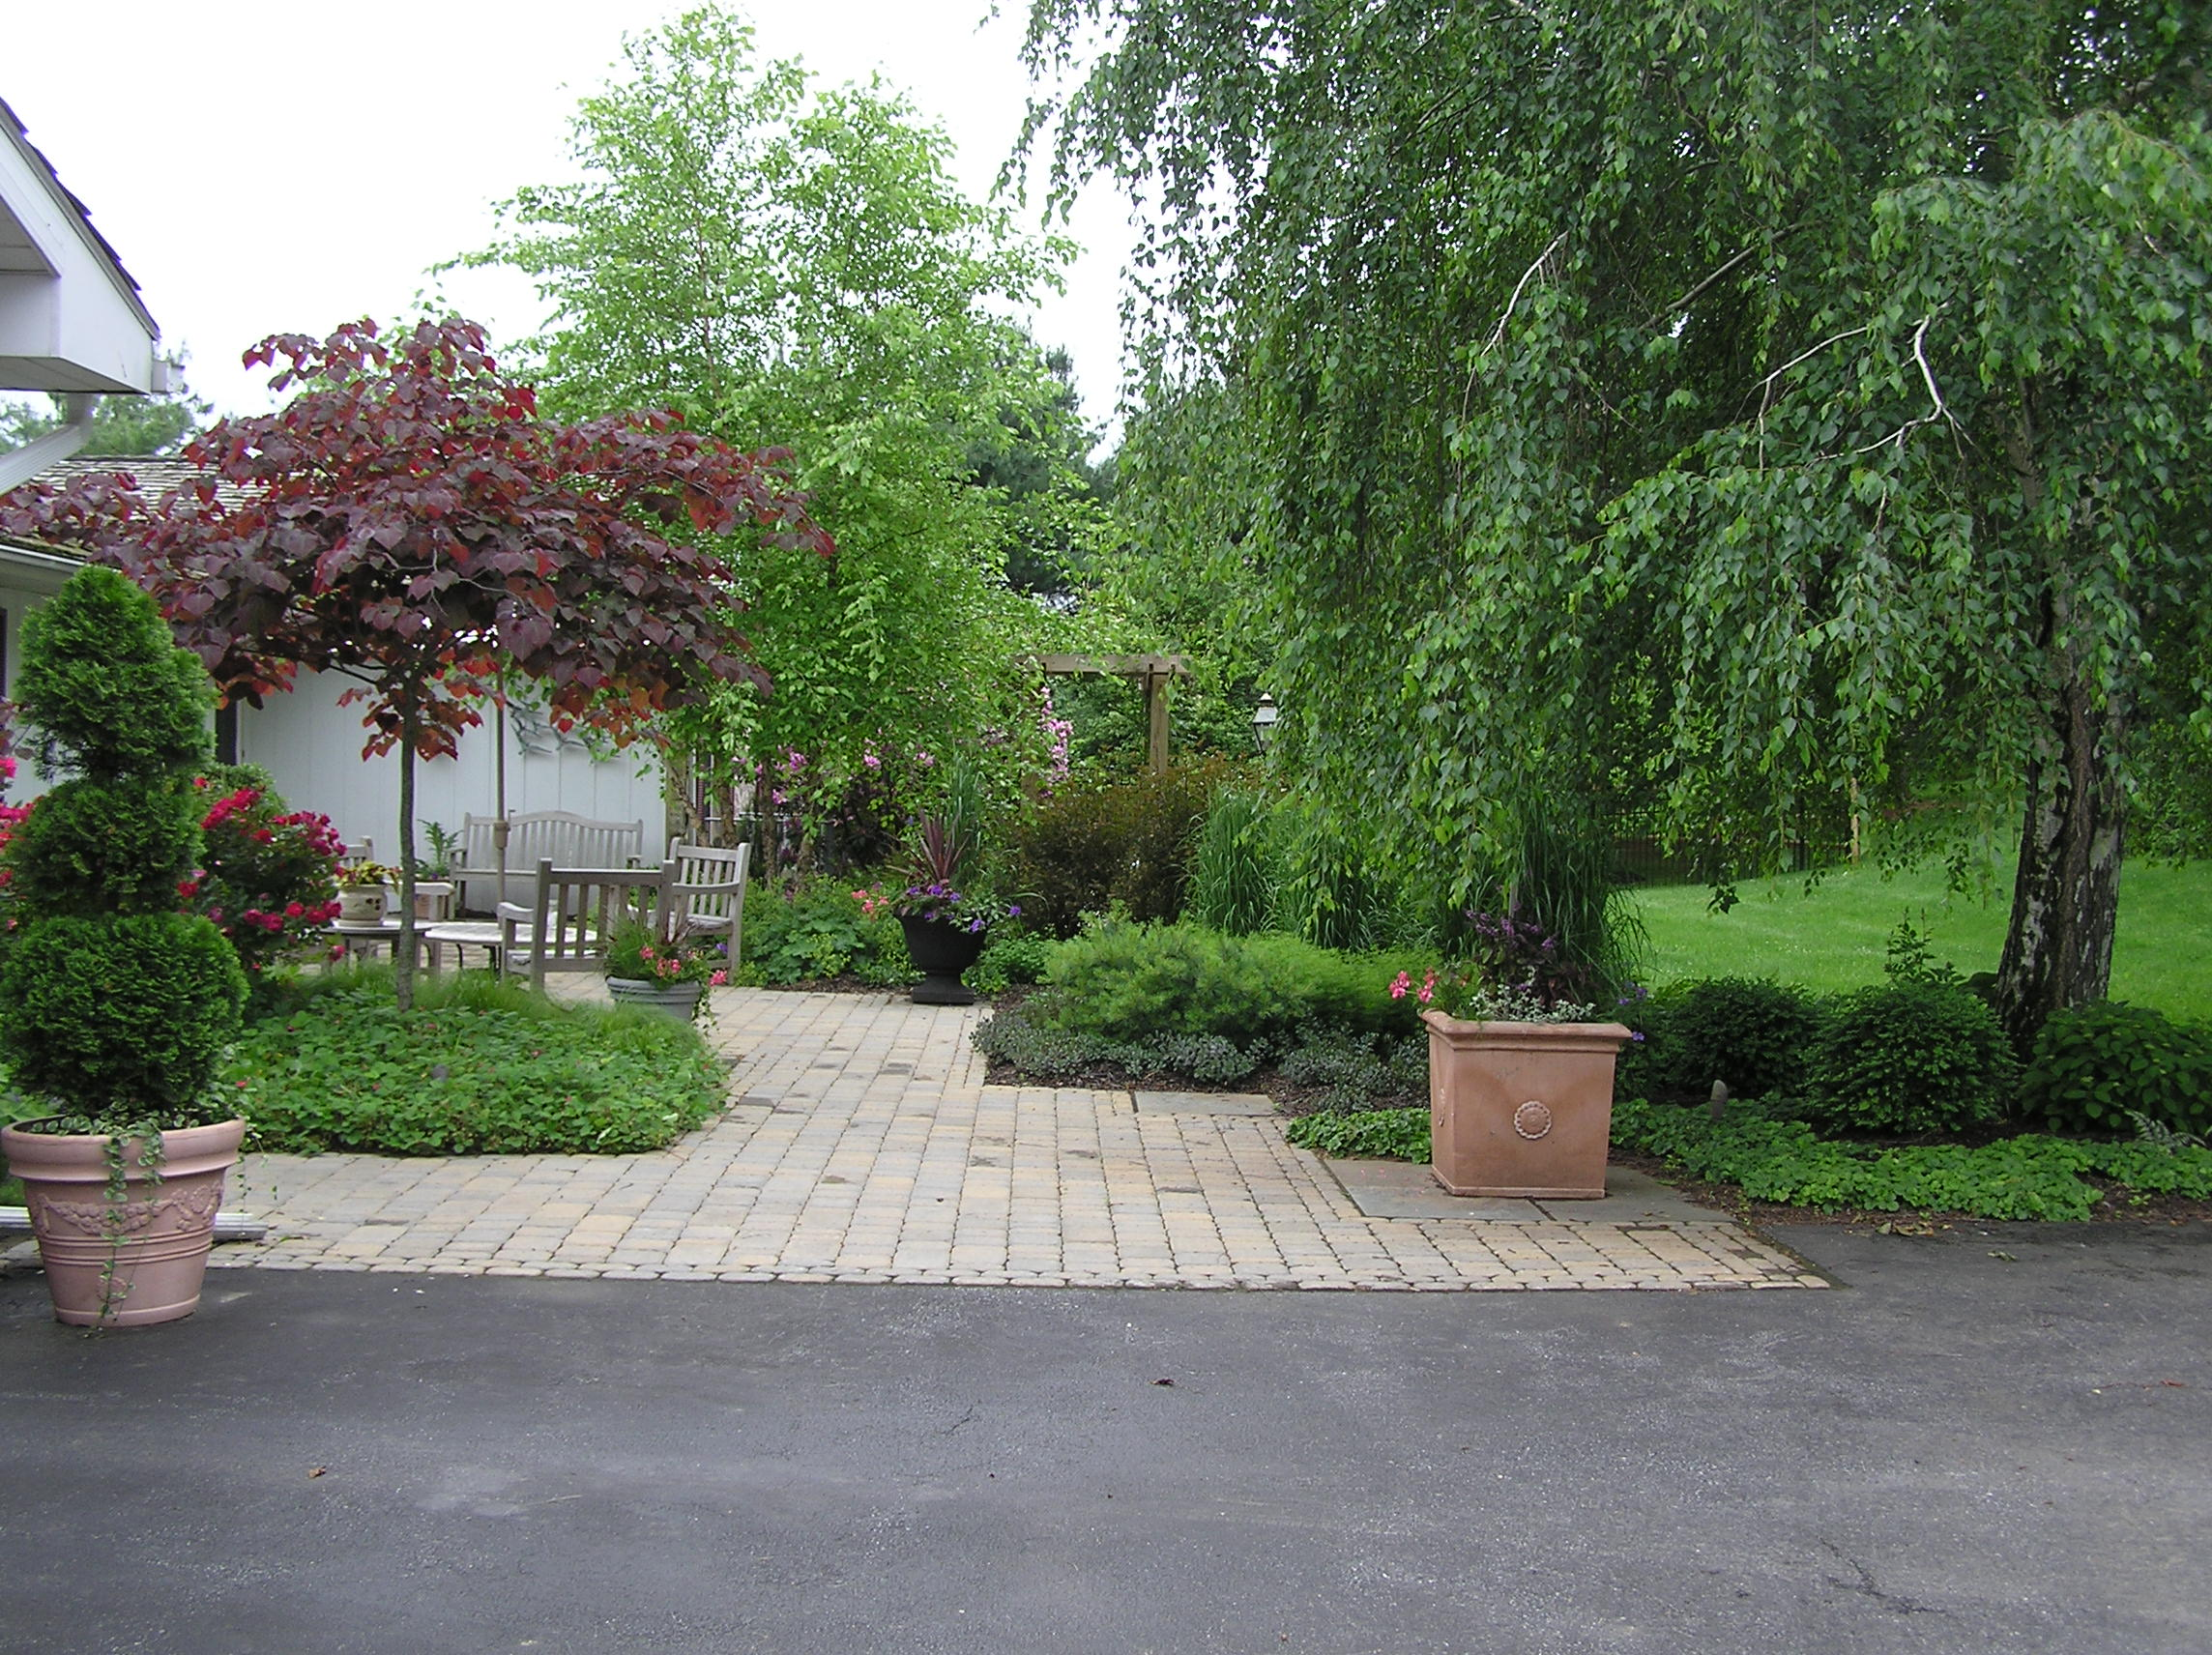 Entry garden, Outdoor entry, outdoor foyer, front of house landscaping, landscape, Bethlehem, PA., Allentown, PA,